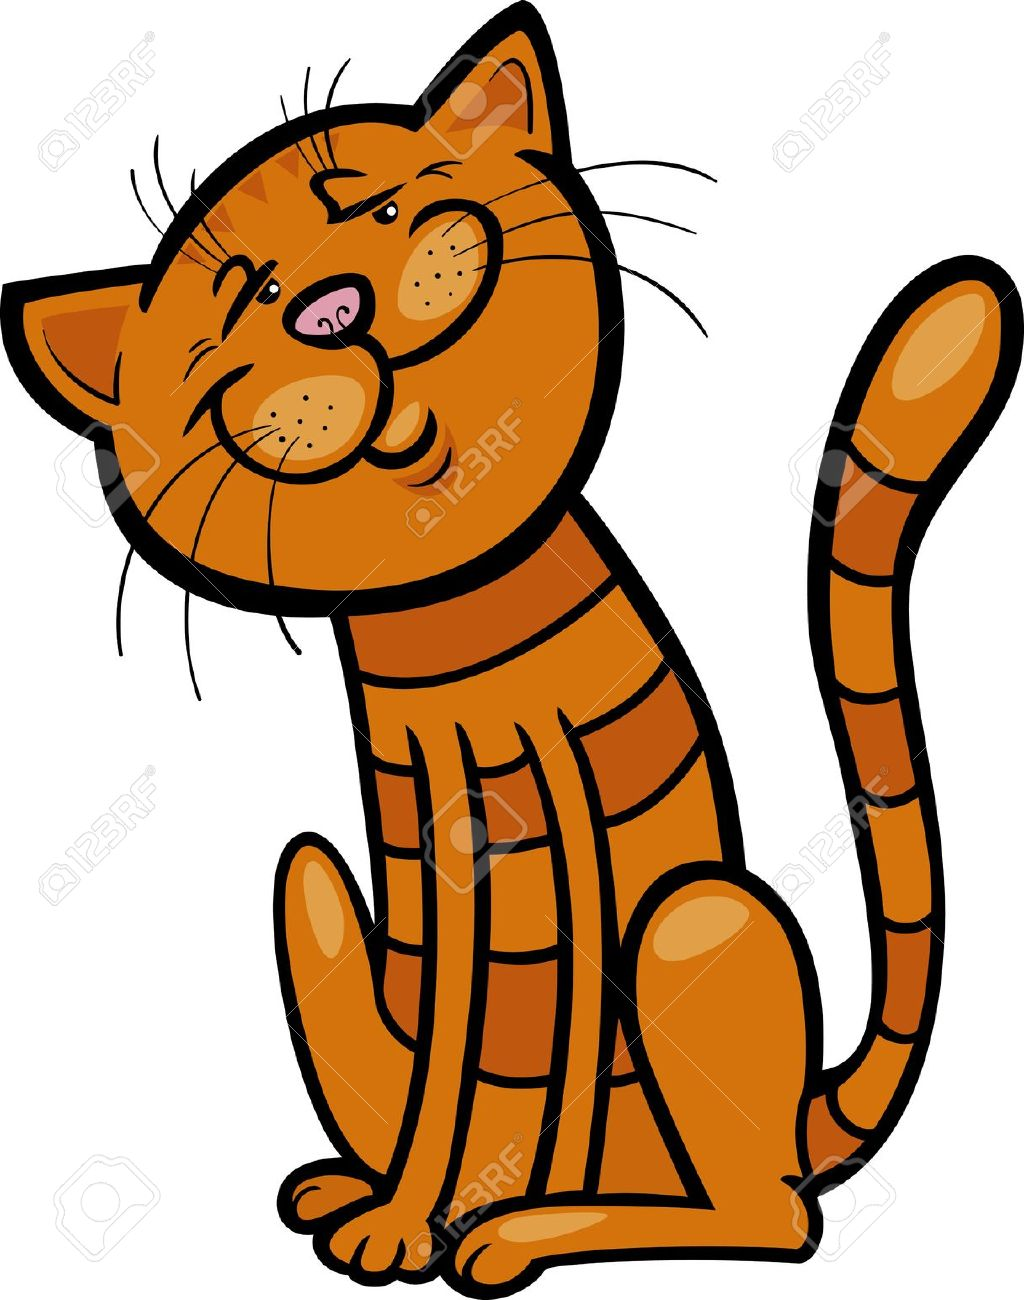 Orange tabby cat clipart.